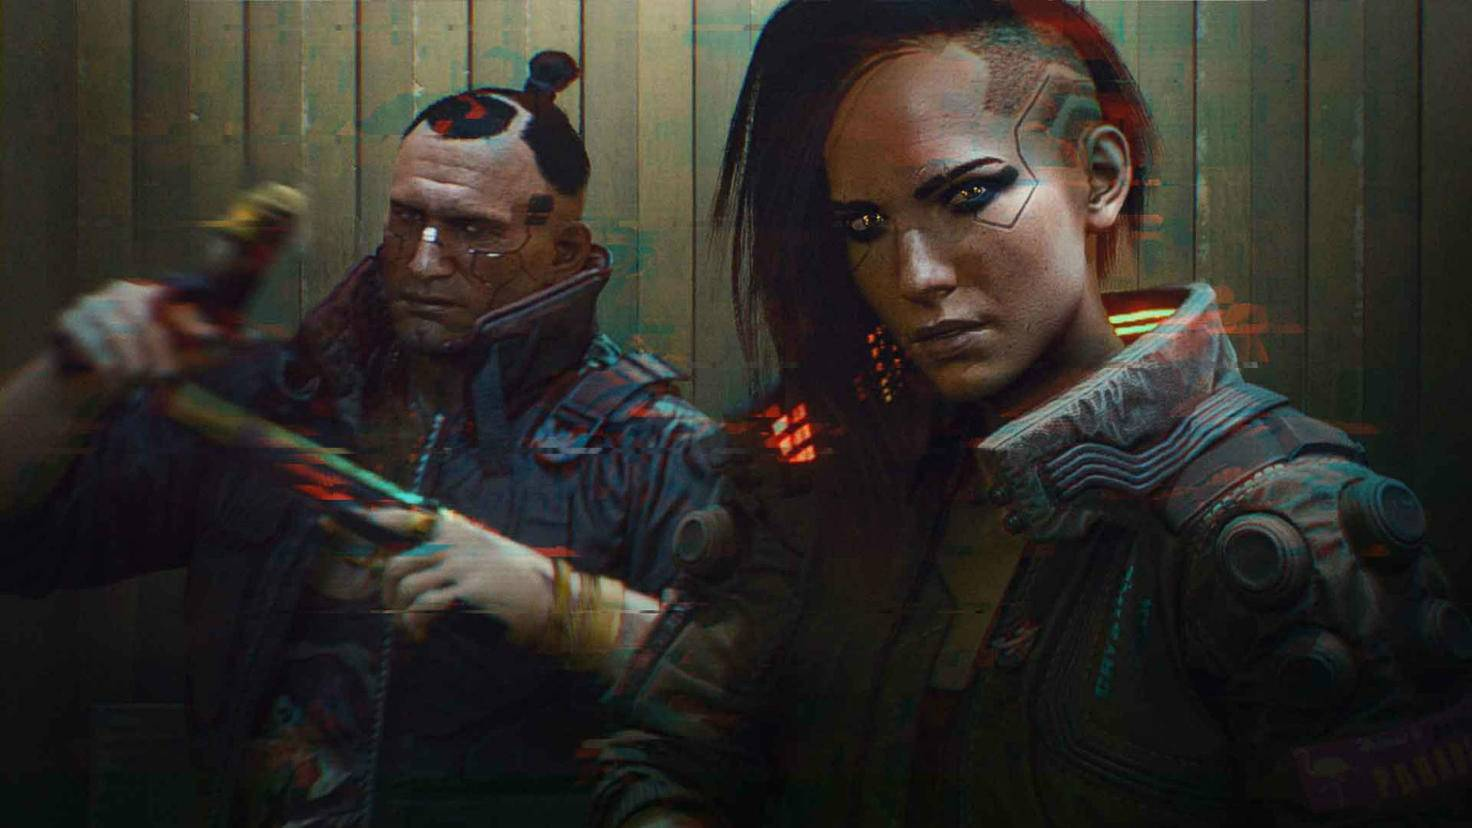 cyberpunk-2077-gameplay-reveal-artwork